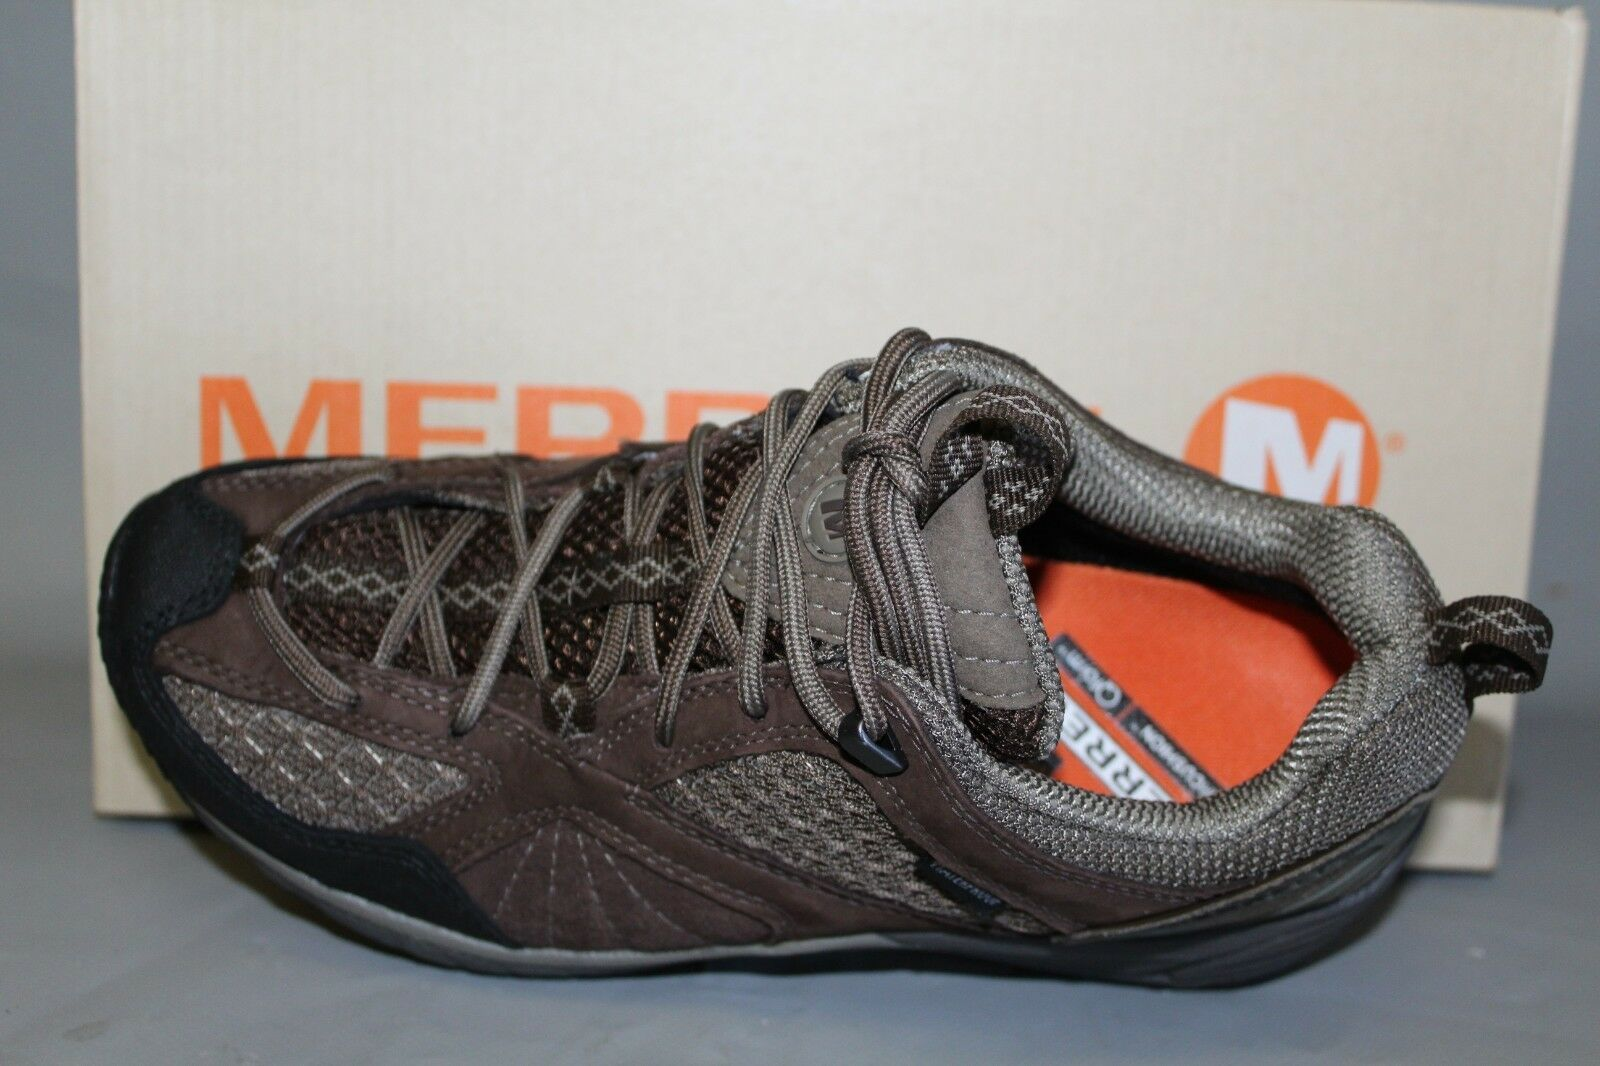 NEW Womens Merrell Avian Light Sz 7.5M, Waterproof Trail Athletic   Casual shoes